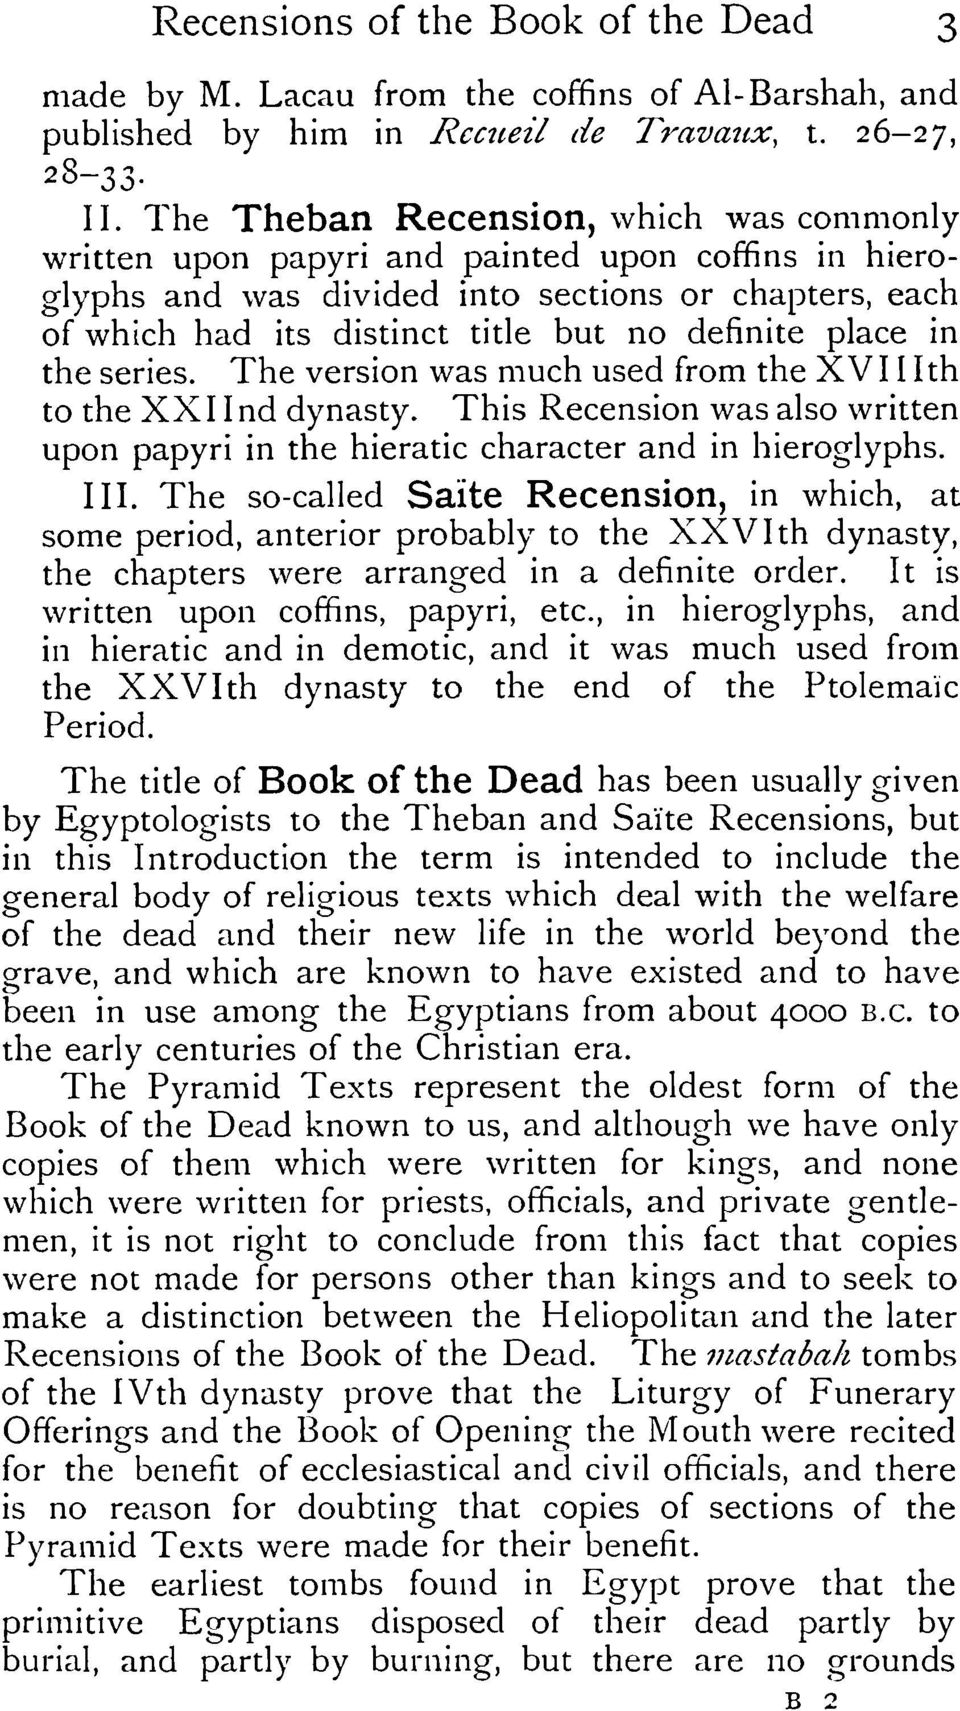 place in the series. The version was much used from the XVI I Ith to the XXIInd dynasty. This Recension was also written upon papyri in the hieratic character and in hieroglyphs. III.